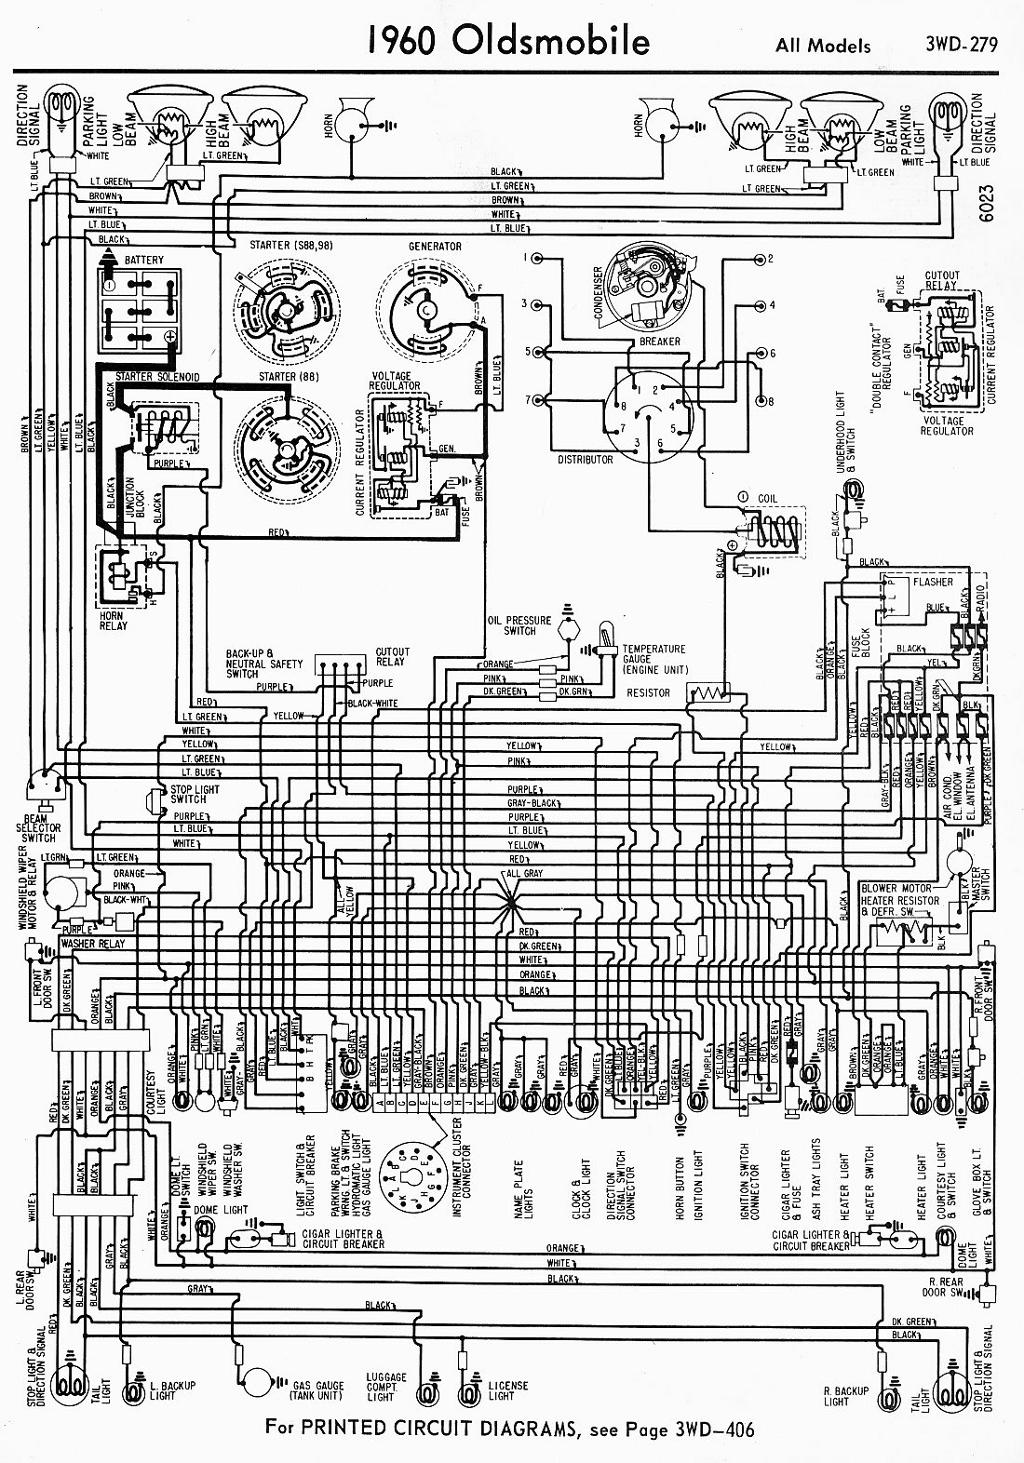 Oldsmobile - Car Manuals, Wiring Diagrams PDF & Fault Codes on free auto wiring schematic, free car repair manuals, free vehicle diagrams, free chilton diagrams, free car parts, electrical diagrams, free diagram templates, free schematic diagram, free auto diagrams, free home, free honda wiring diagram, free car schematics, free electronic schematics, free engine rebuilding diagrams, free car seats, free car diagnostic, free car tools, free car maintenance, free car engine diagrams, free toyota repair diagrams,